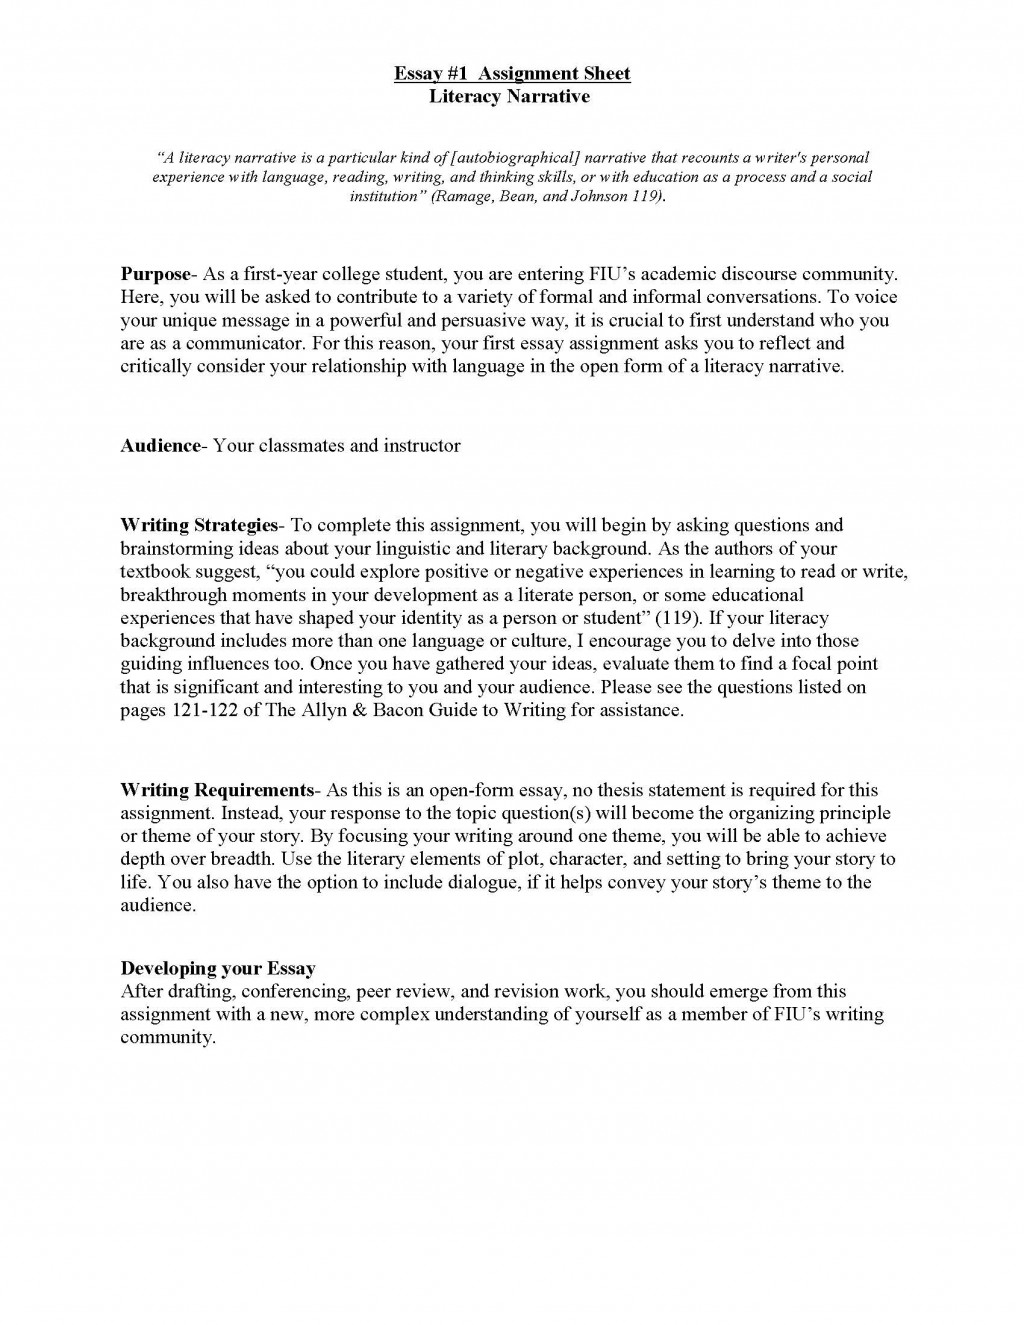 010 Essay Example Examples Of Narrative Literacy Unit Assignment Spring 2012 Page 1 Fascinating A In Third Person Apa Format 8th Grade Personal Essays Large